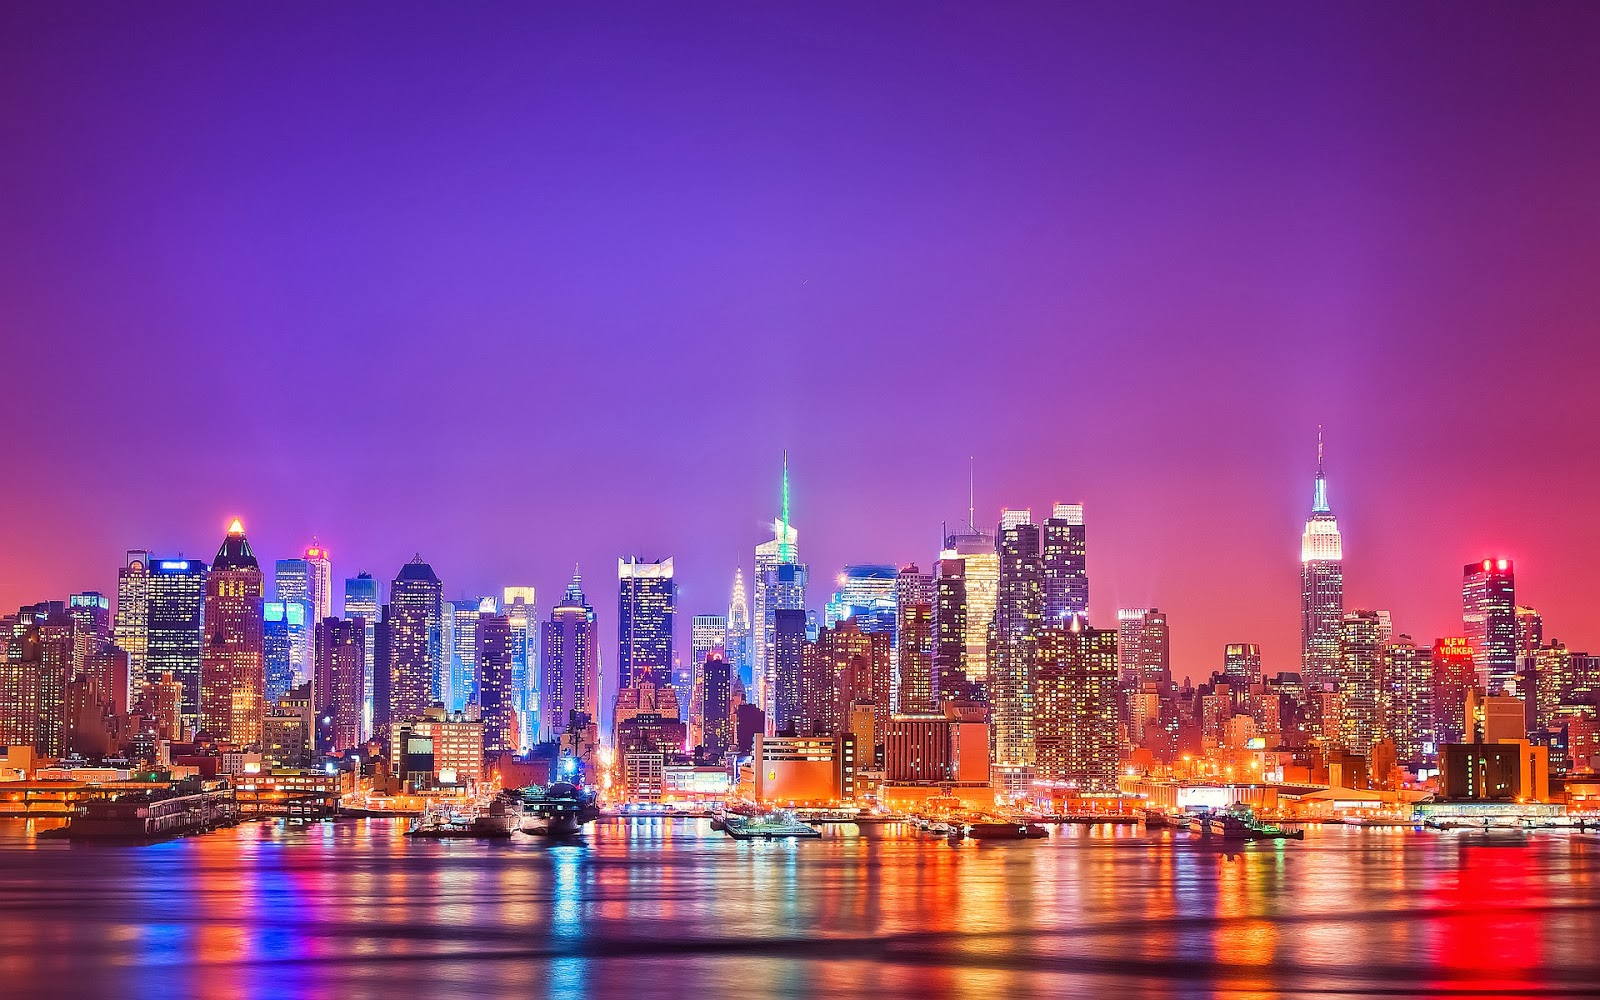 New York City HD Wallpapers,Pics - HD Wallpapers Blog